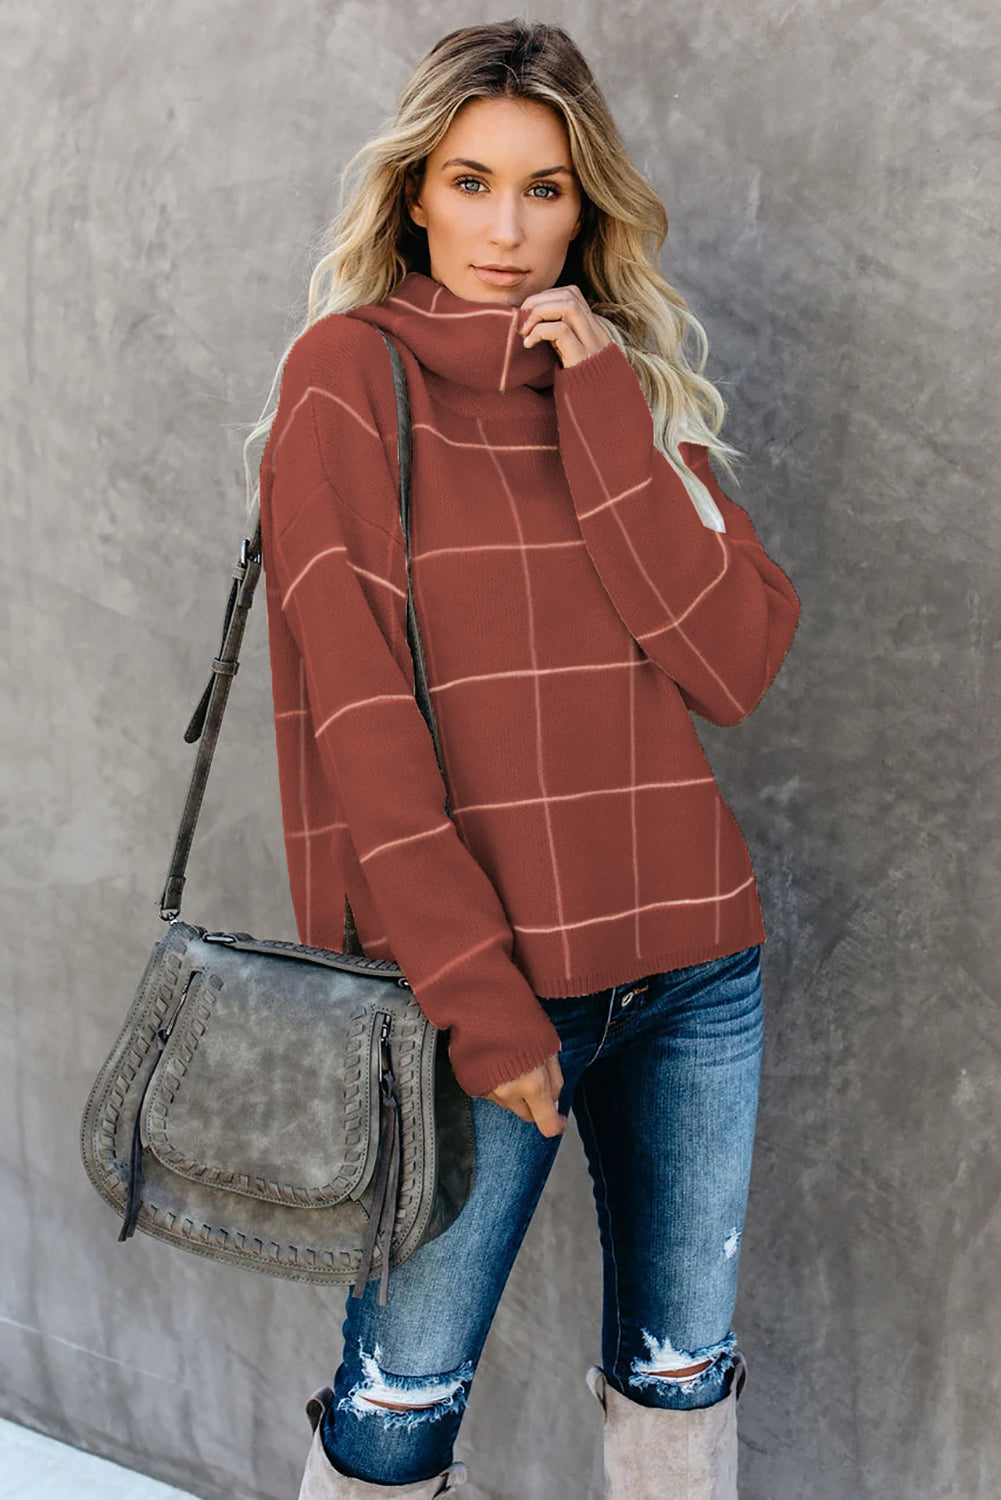 Brown Grid Pattern Turtleneck Sweater Sweaters & Cardigans Discount Designer Fashion Clothes Shoes Bags Women Men Kids Children Black Owned Business